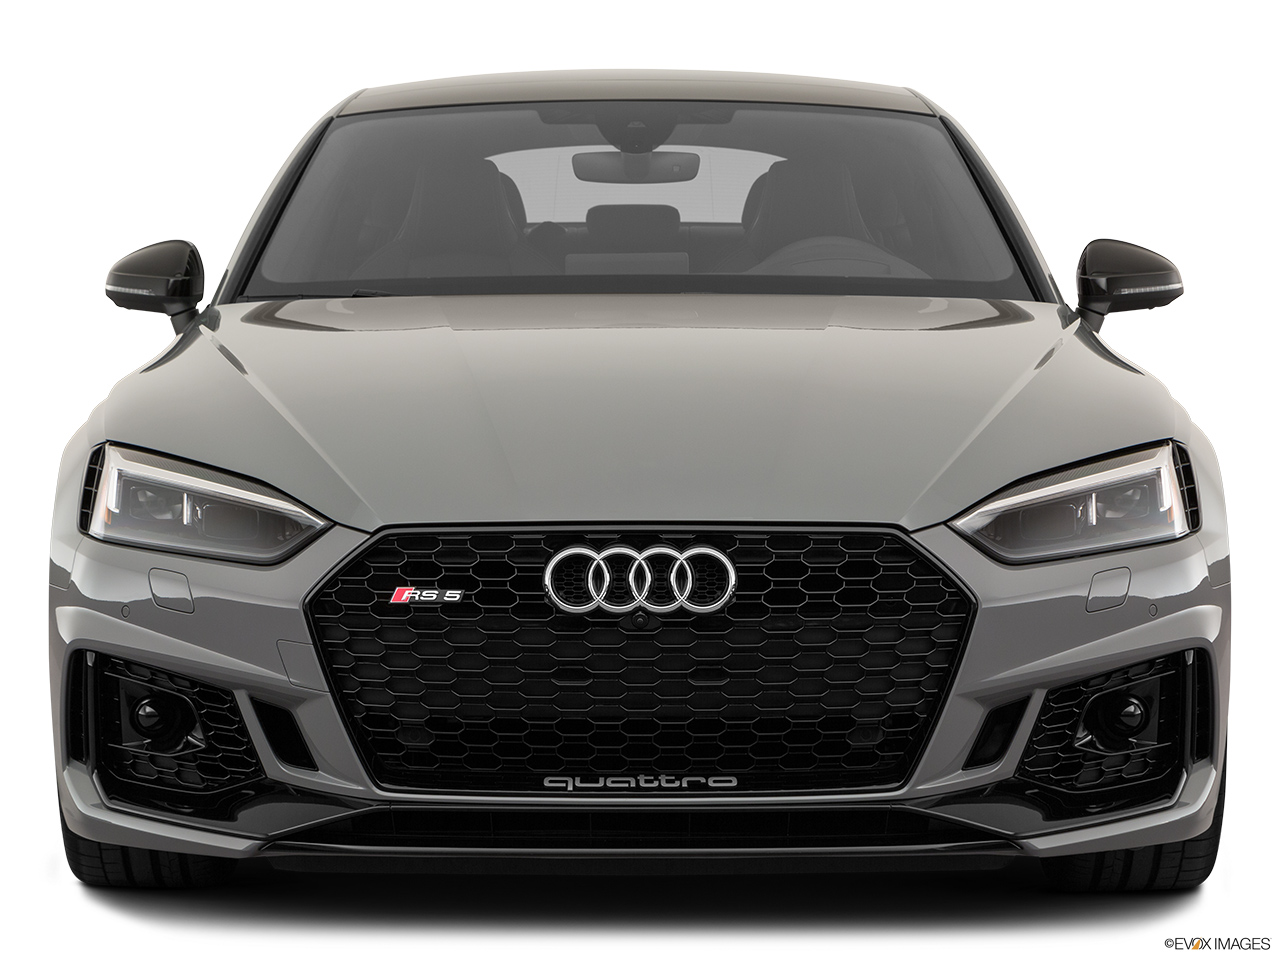 2019 Audi RS 5 Sportback 2.9 TFSI Low/wide front.